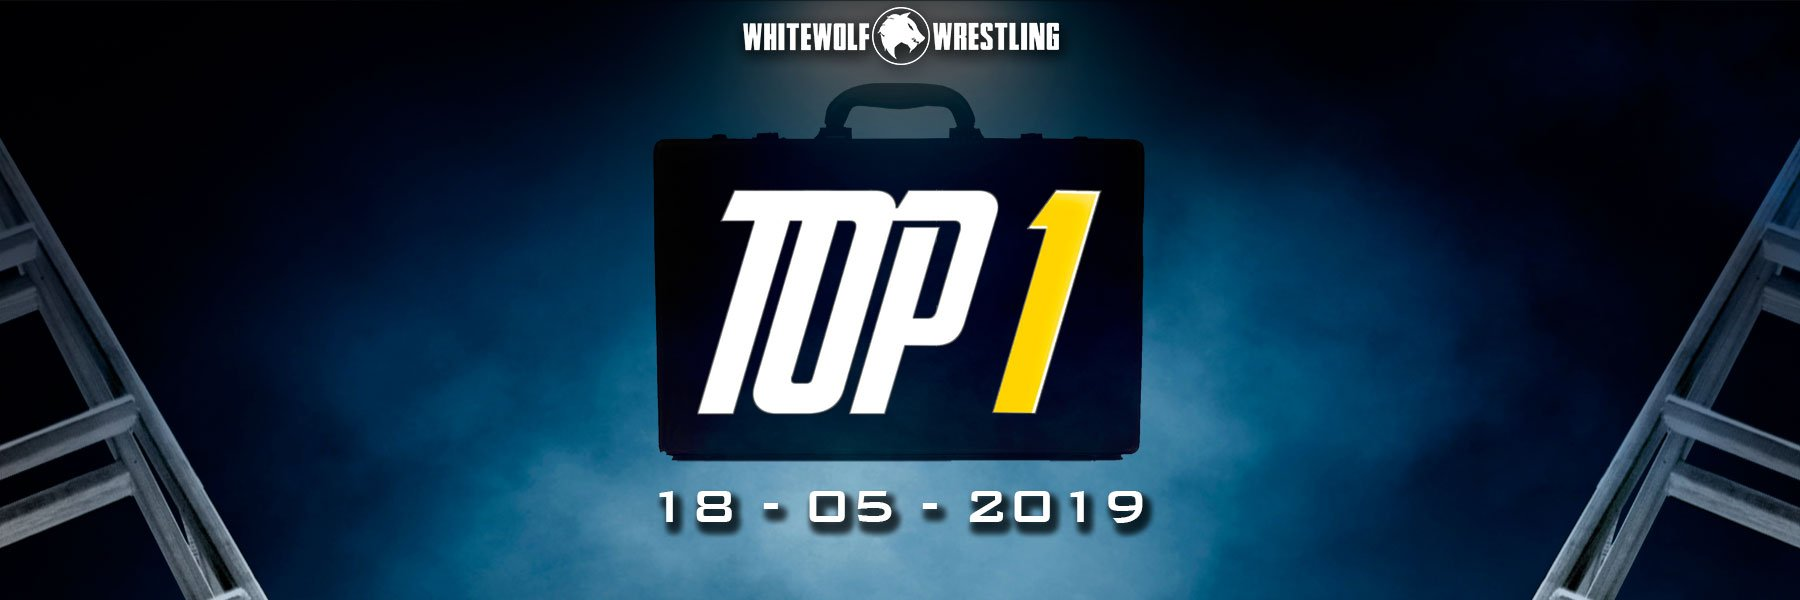 Top 1 - Full Show - 18/05/2019